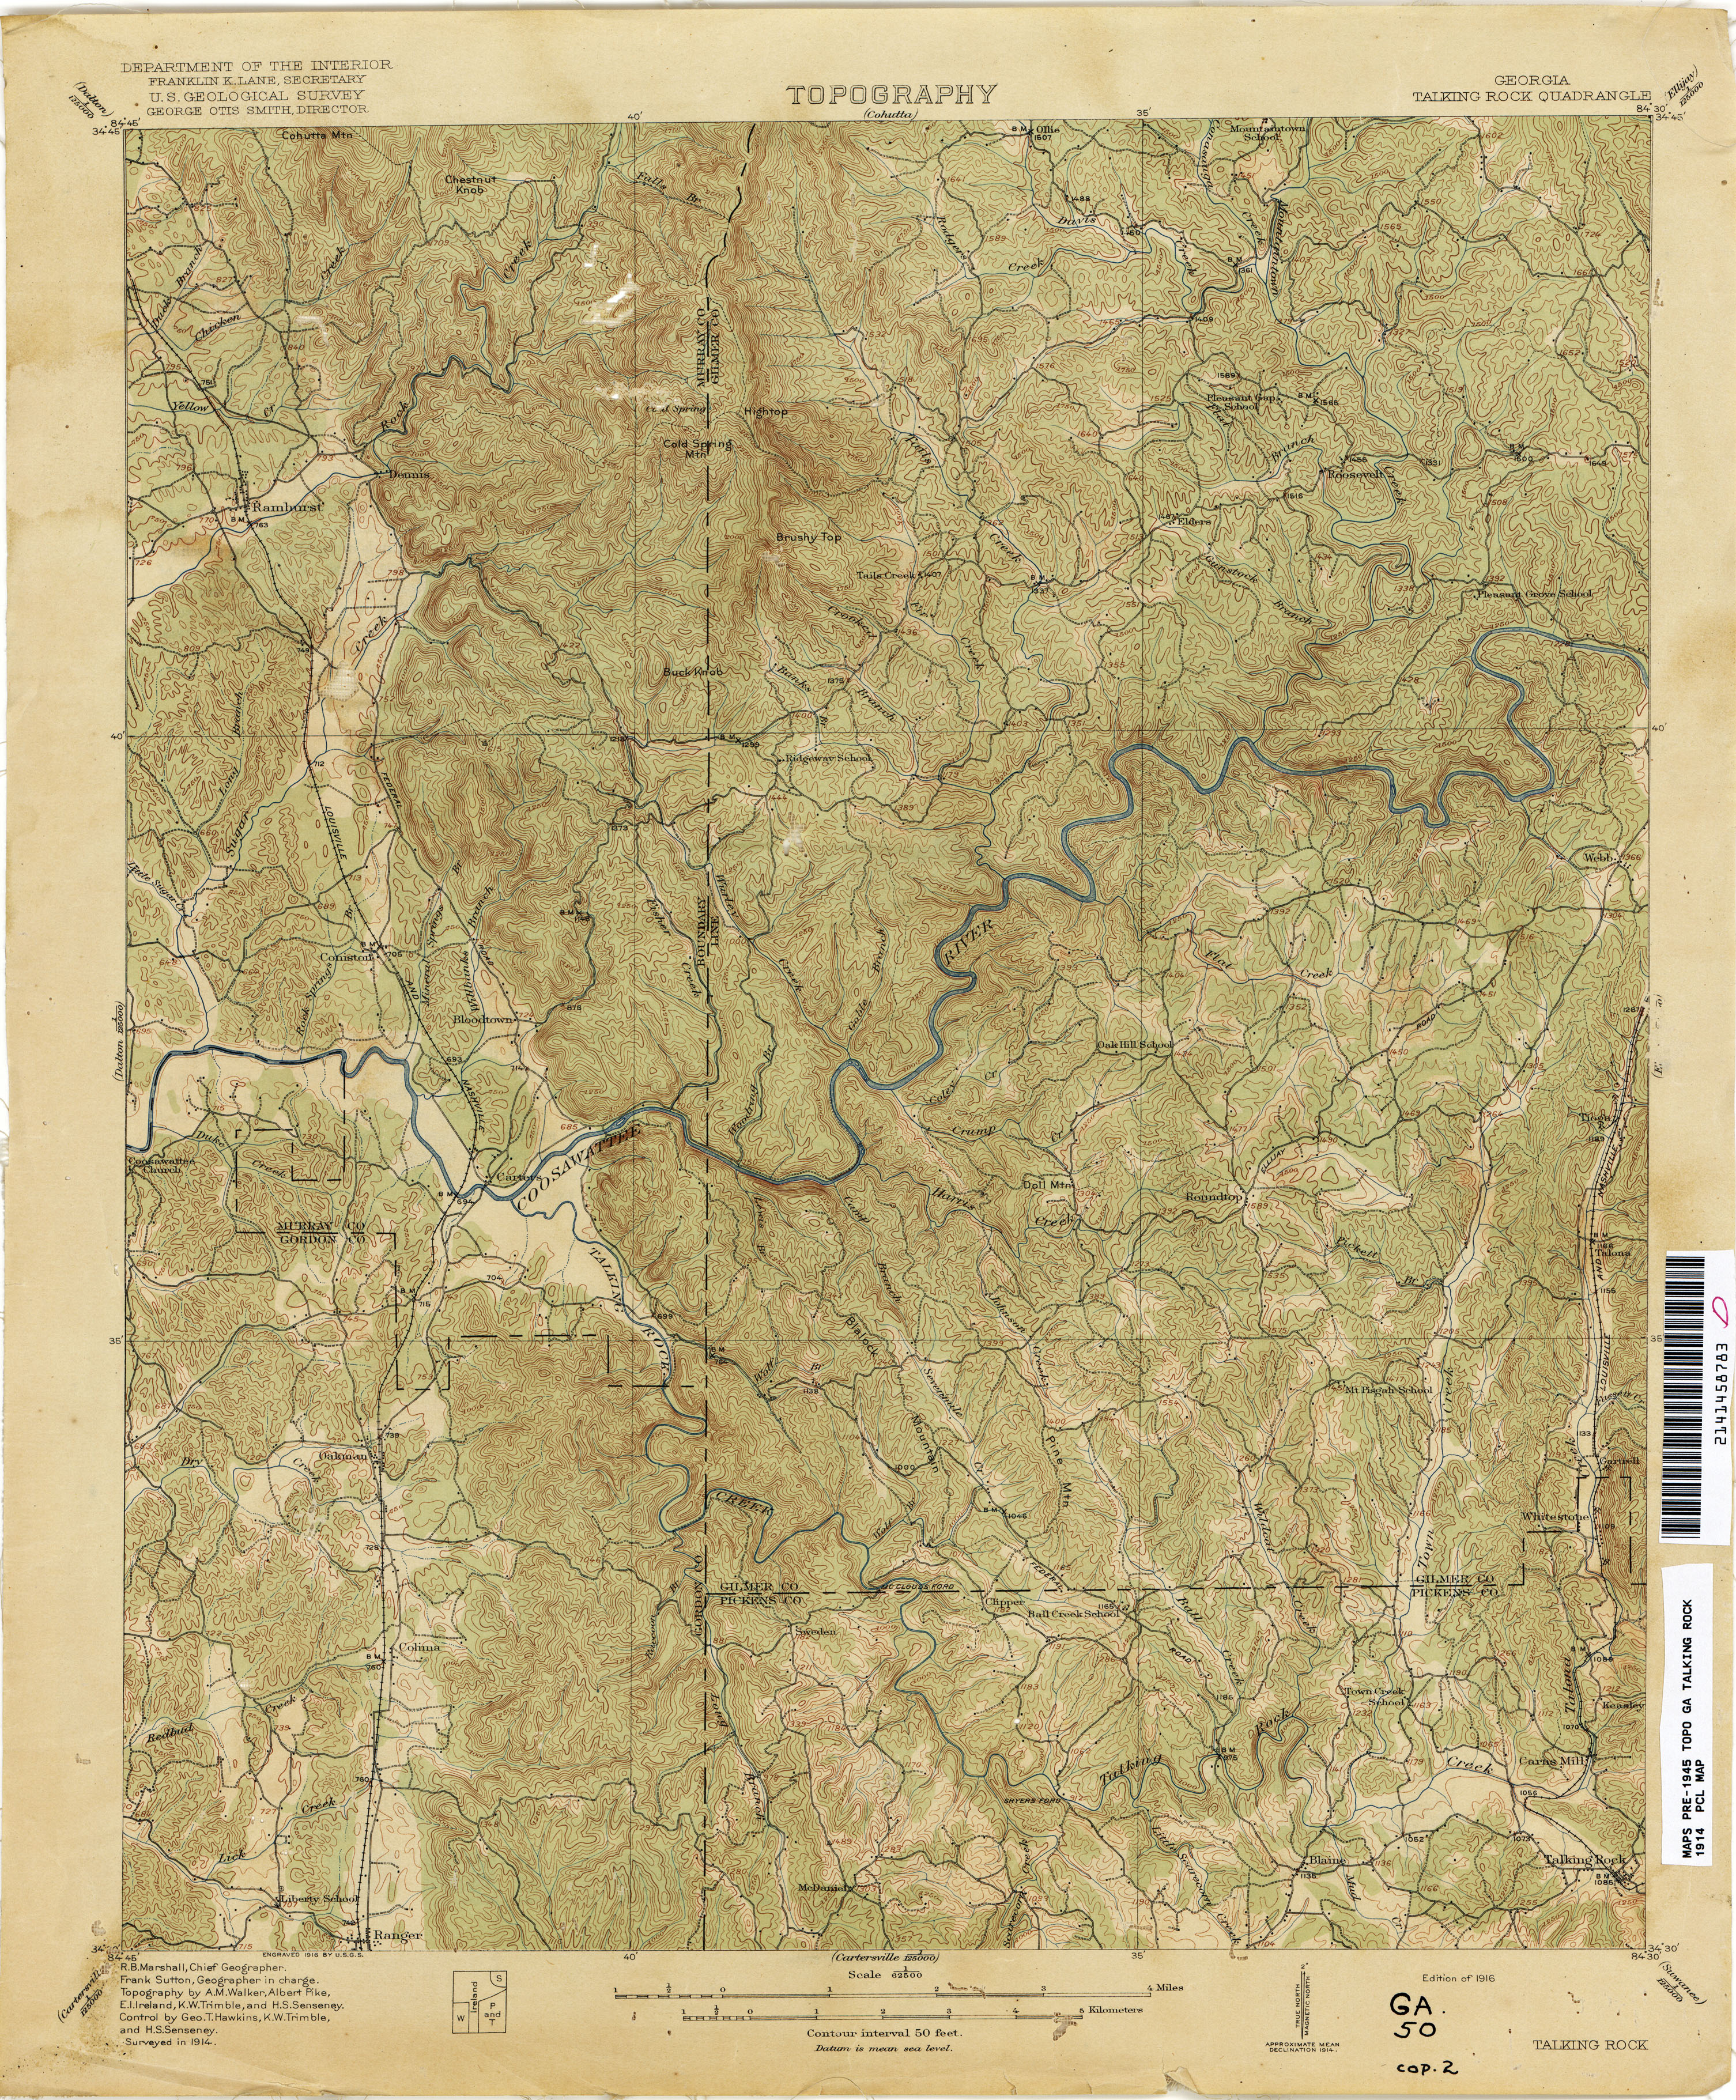 Show A Map Of Georgia.Georgia Historical Topographic Maps Perry Castaneda Map Collection